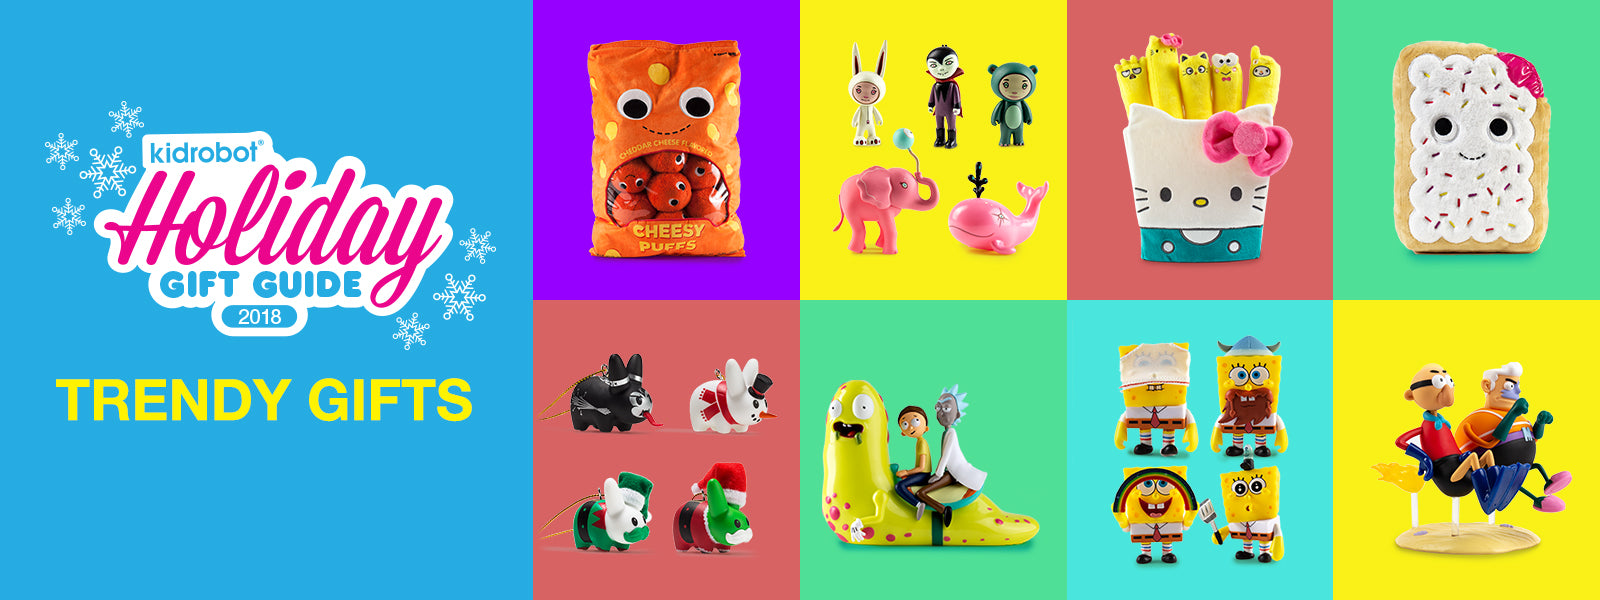 Kidrobot Holiday Gift Guide 2018: Trendy Gifts Tagged \